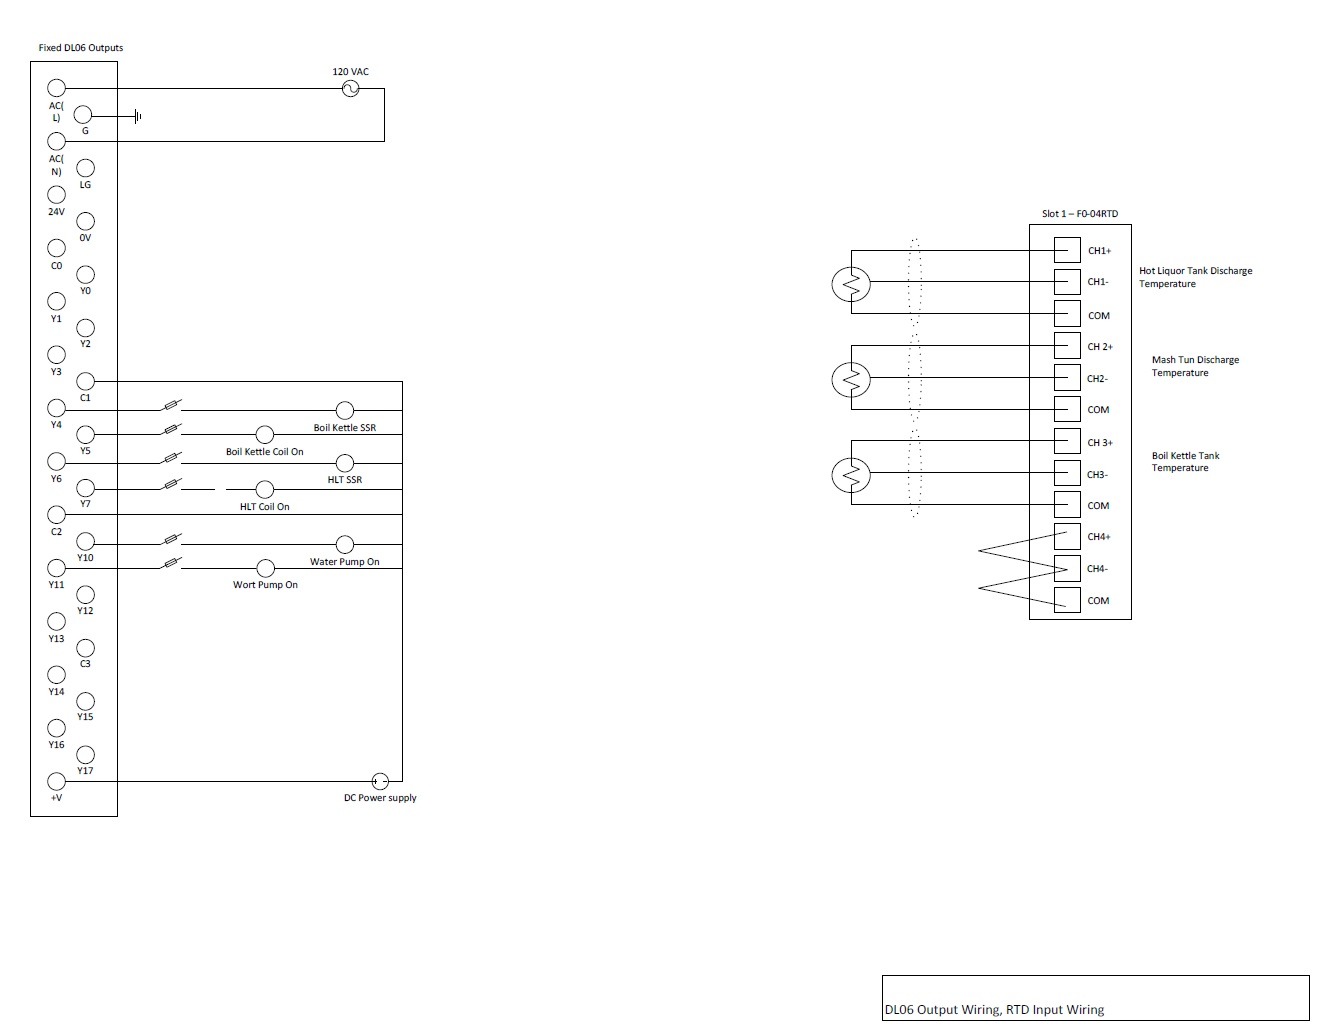 electric brewing on a plc - wiring diagram